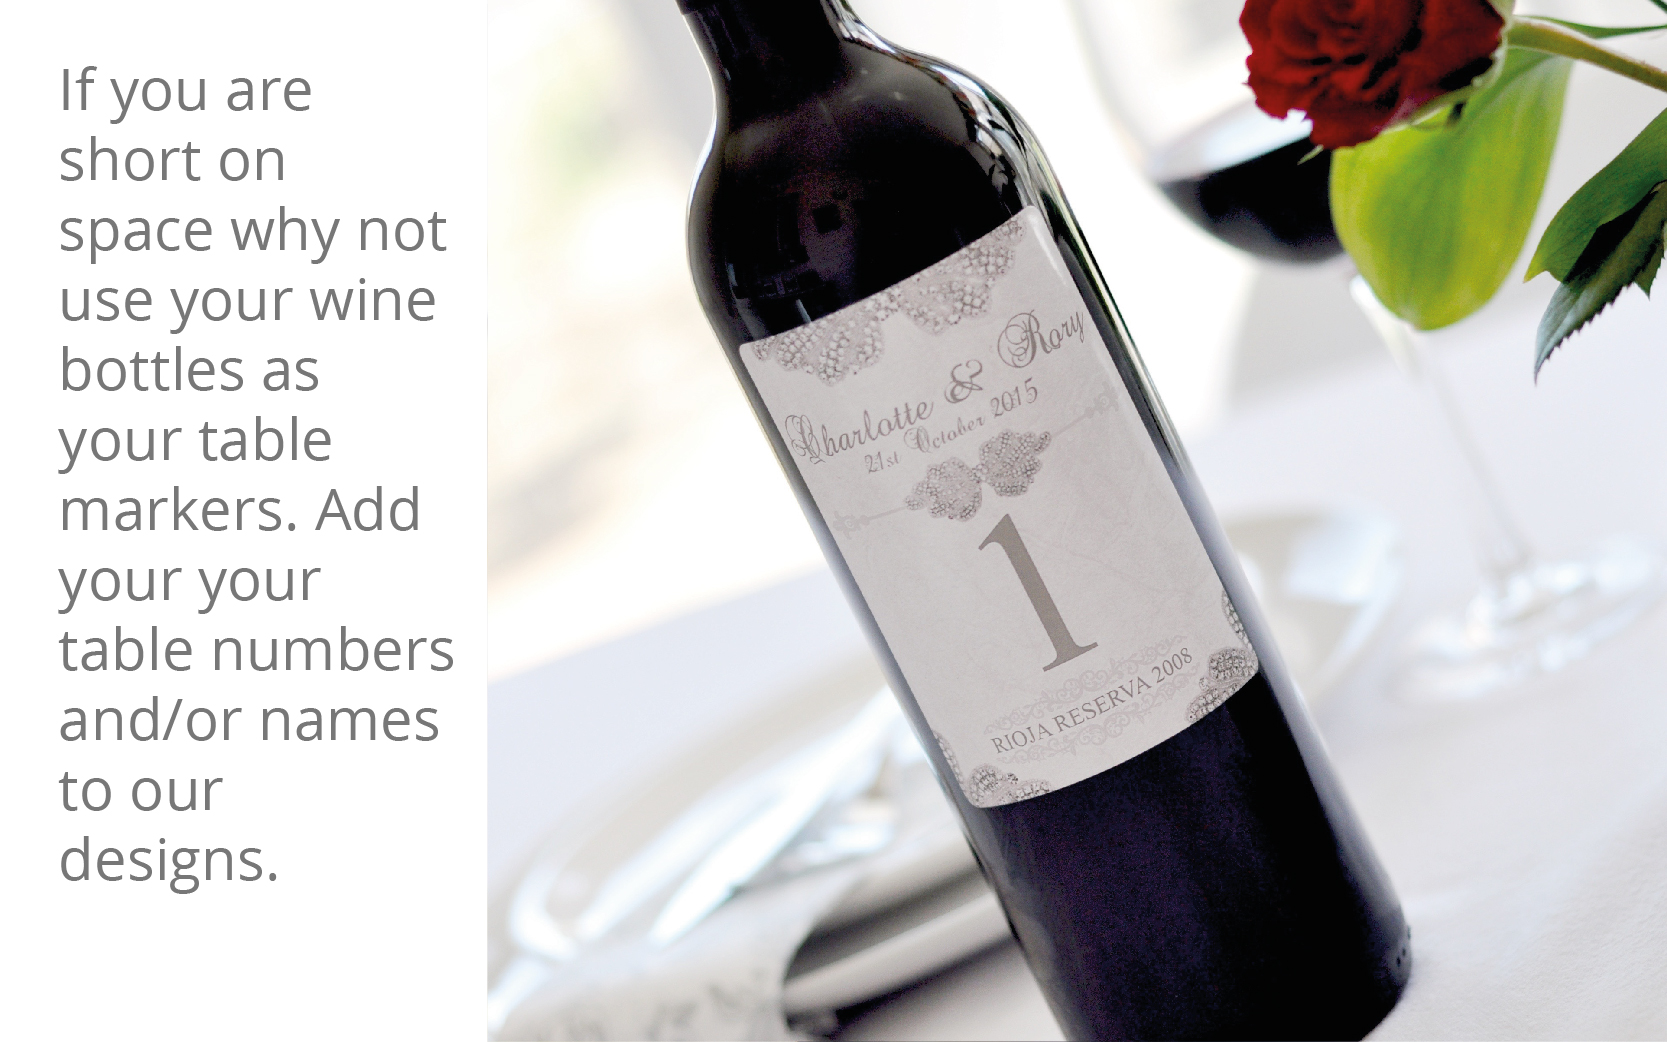 Personalised table number wine bottles for your wedding